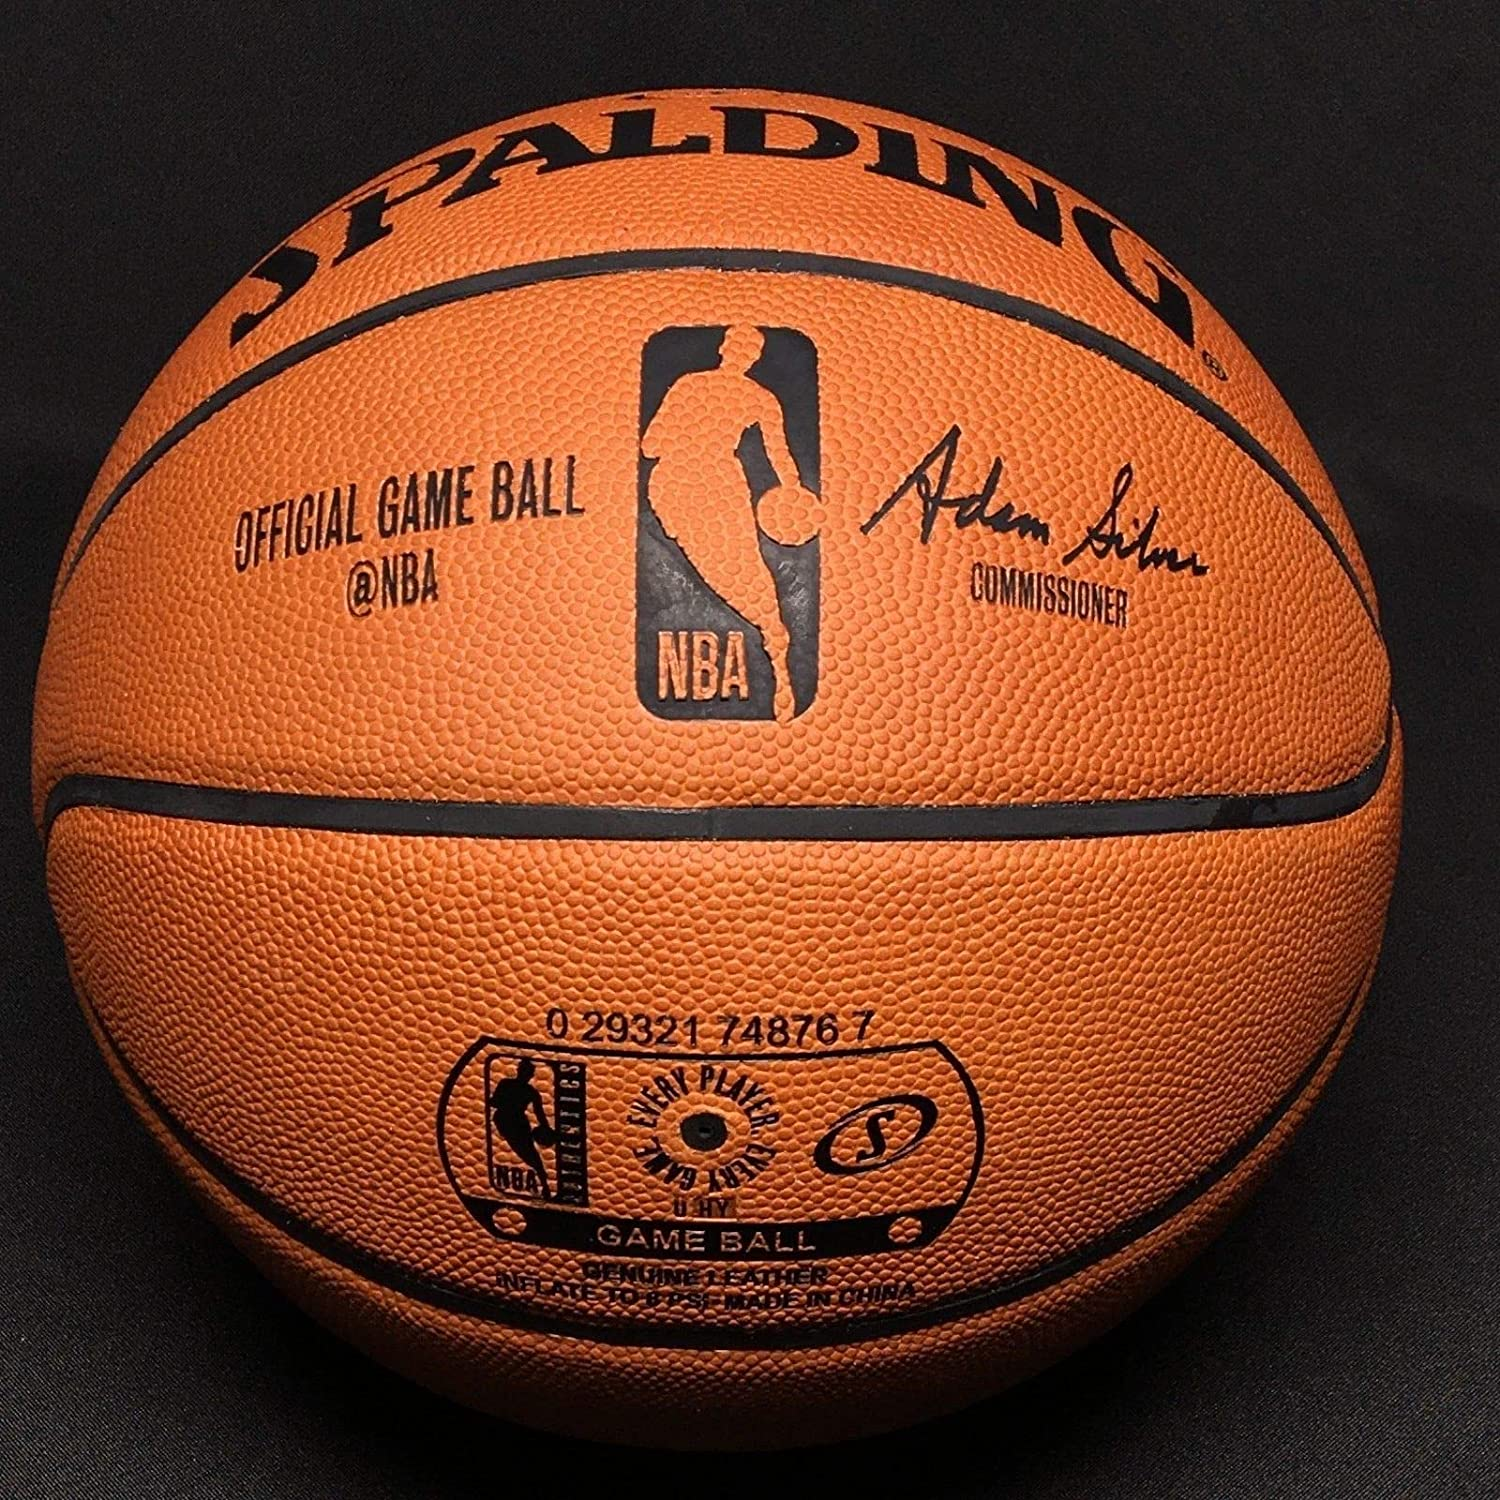 a490f78c2a6 Allen Iverson Autographed Signed Autograph Nba Spalding Game Basketball Hof  2K16 PSA/DNA 52463 at Amazon's Sports Collectibles Store